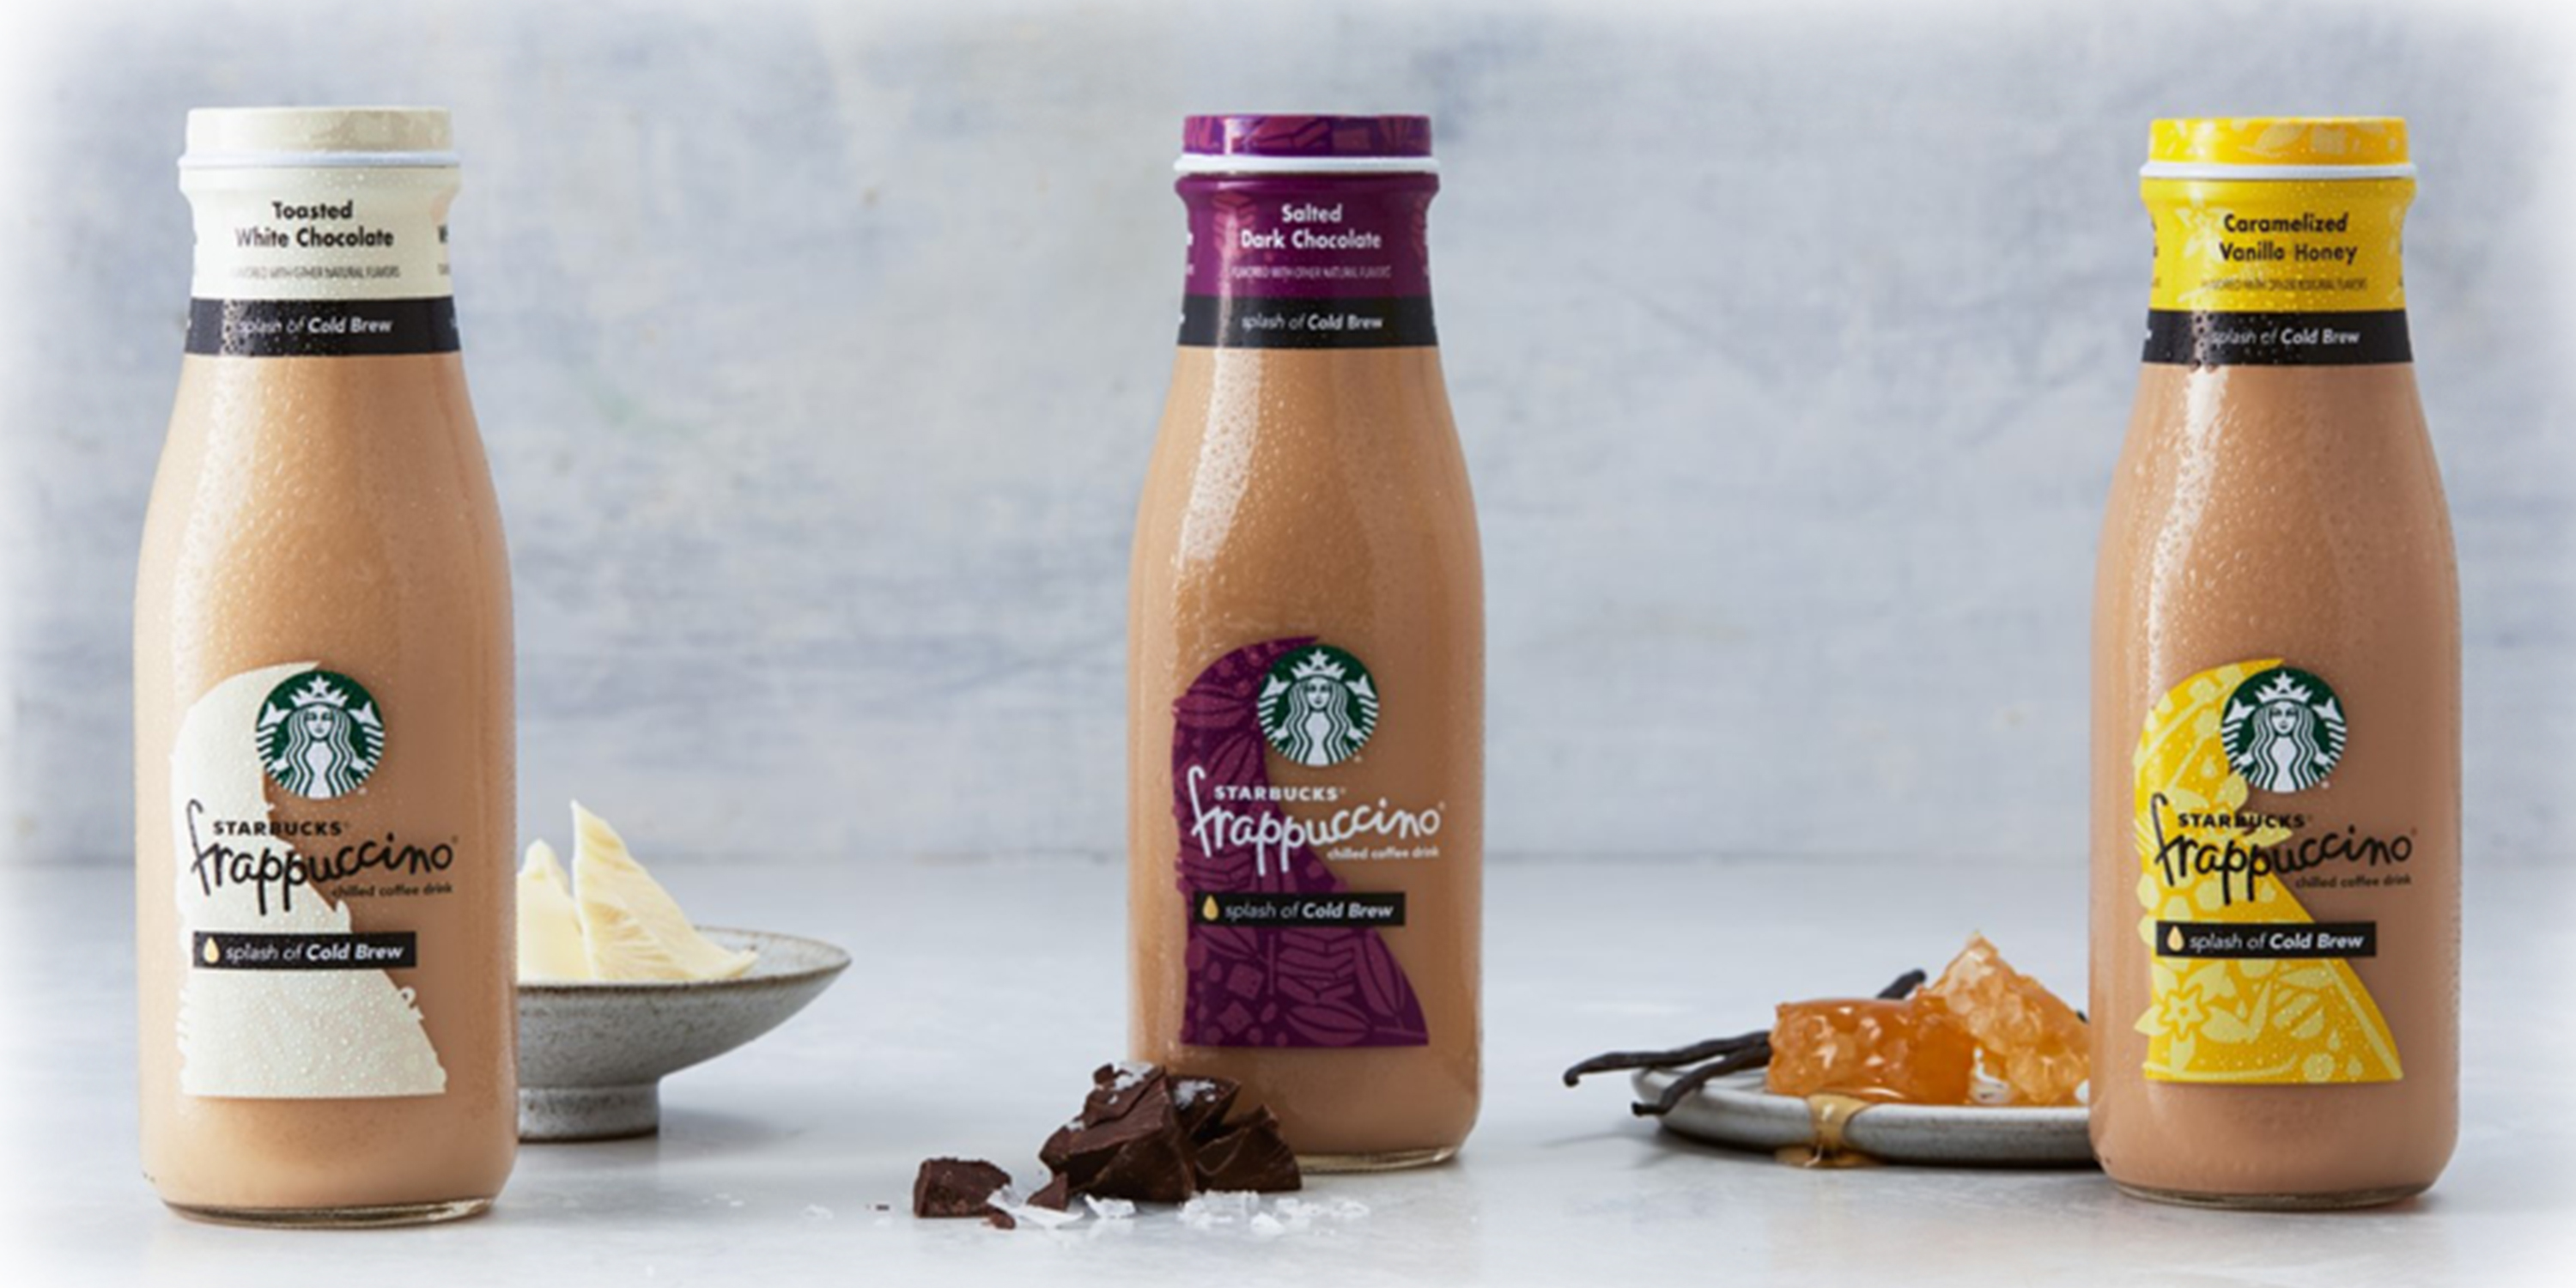 Starbucks Frappuccino With Cold Brew 2 Flavor Variety Pack